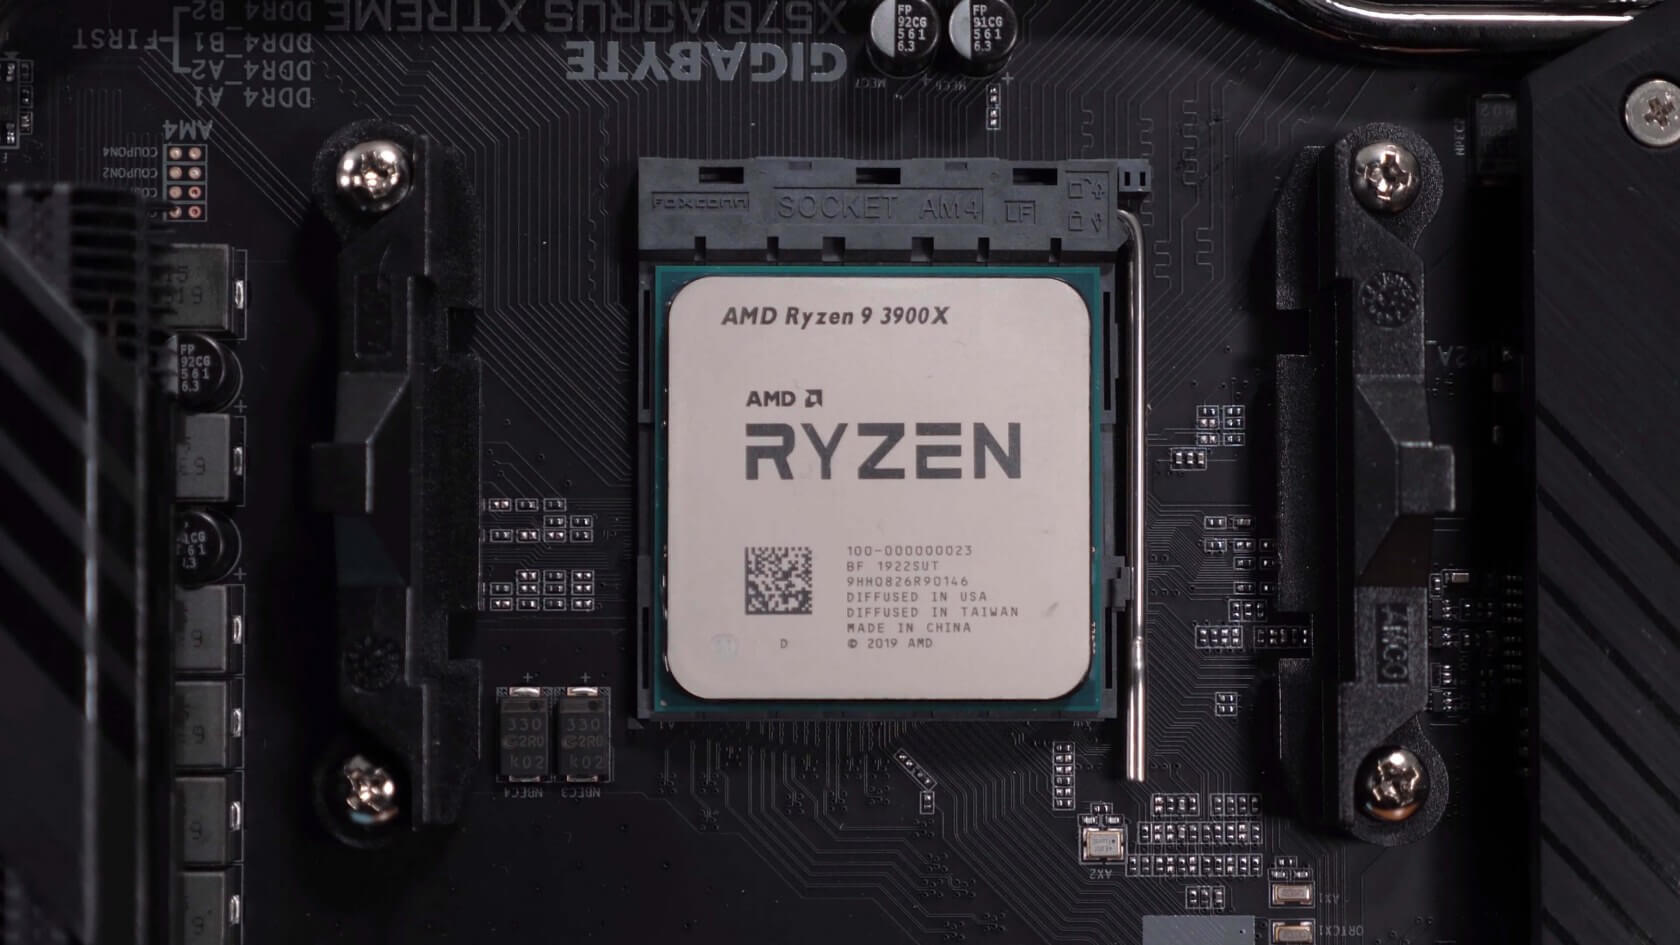 AMD's Ryzen 9 3900X is going for as much as $800 amid supply issues